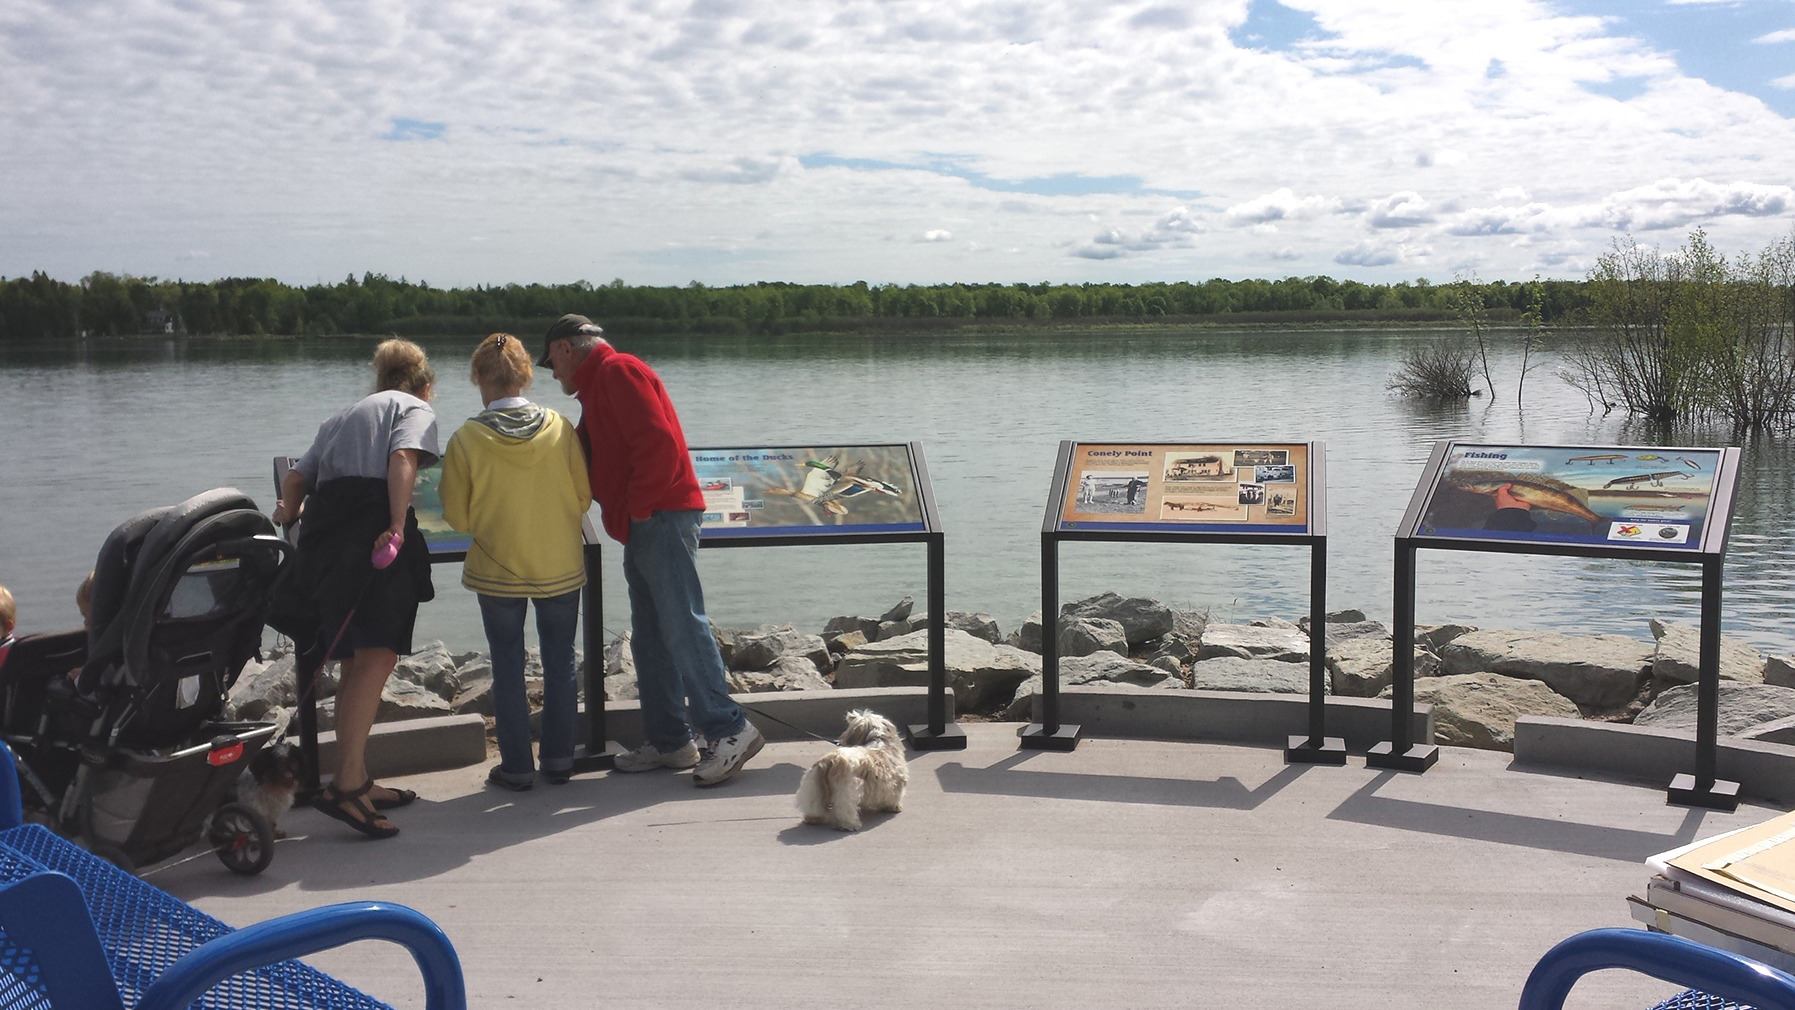 Conely Point Boating Access Site, on the St. Marys River in the Upper Peninsula, features displays that help visitors learn.